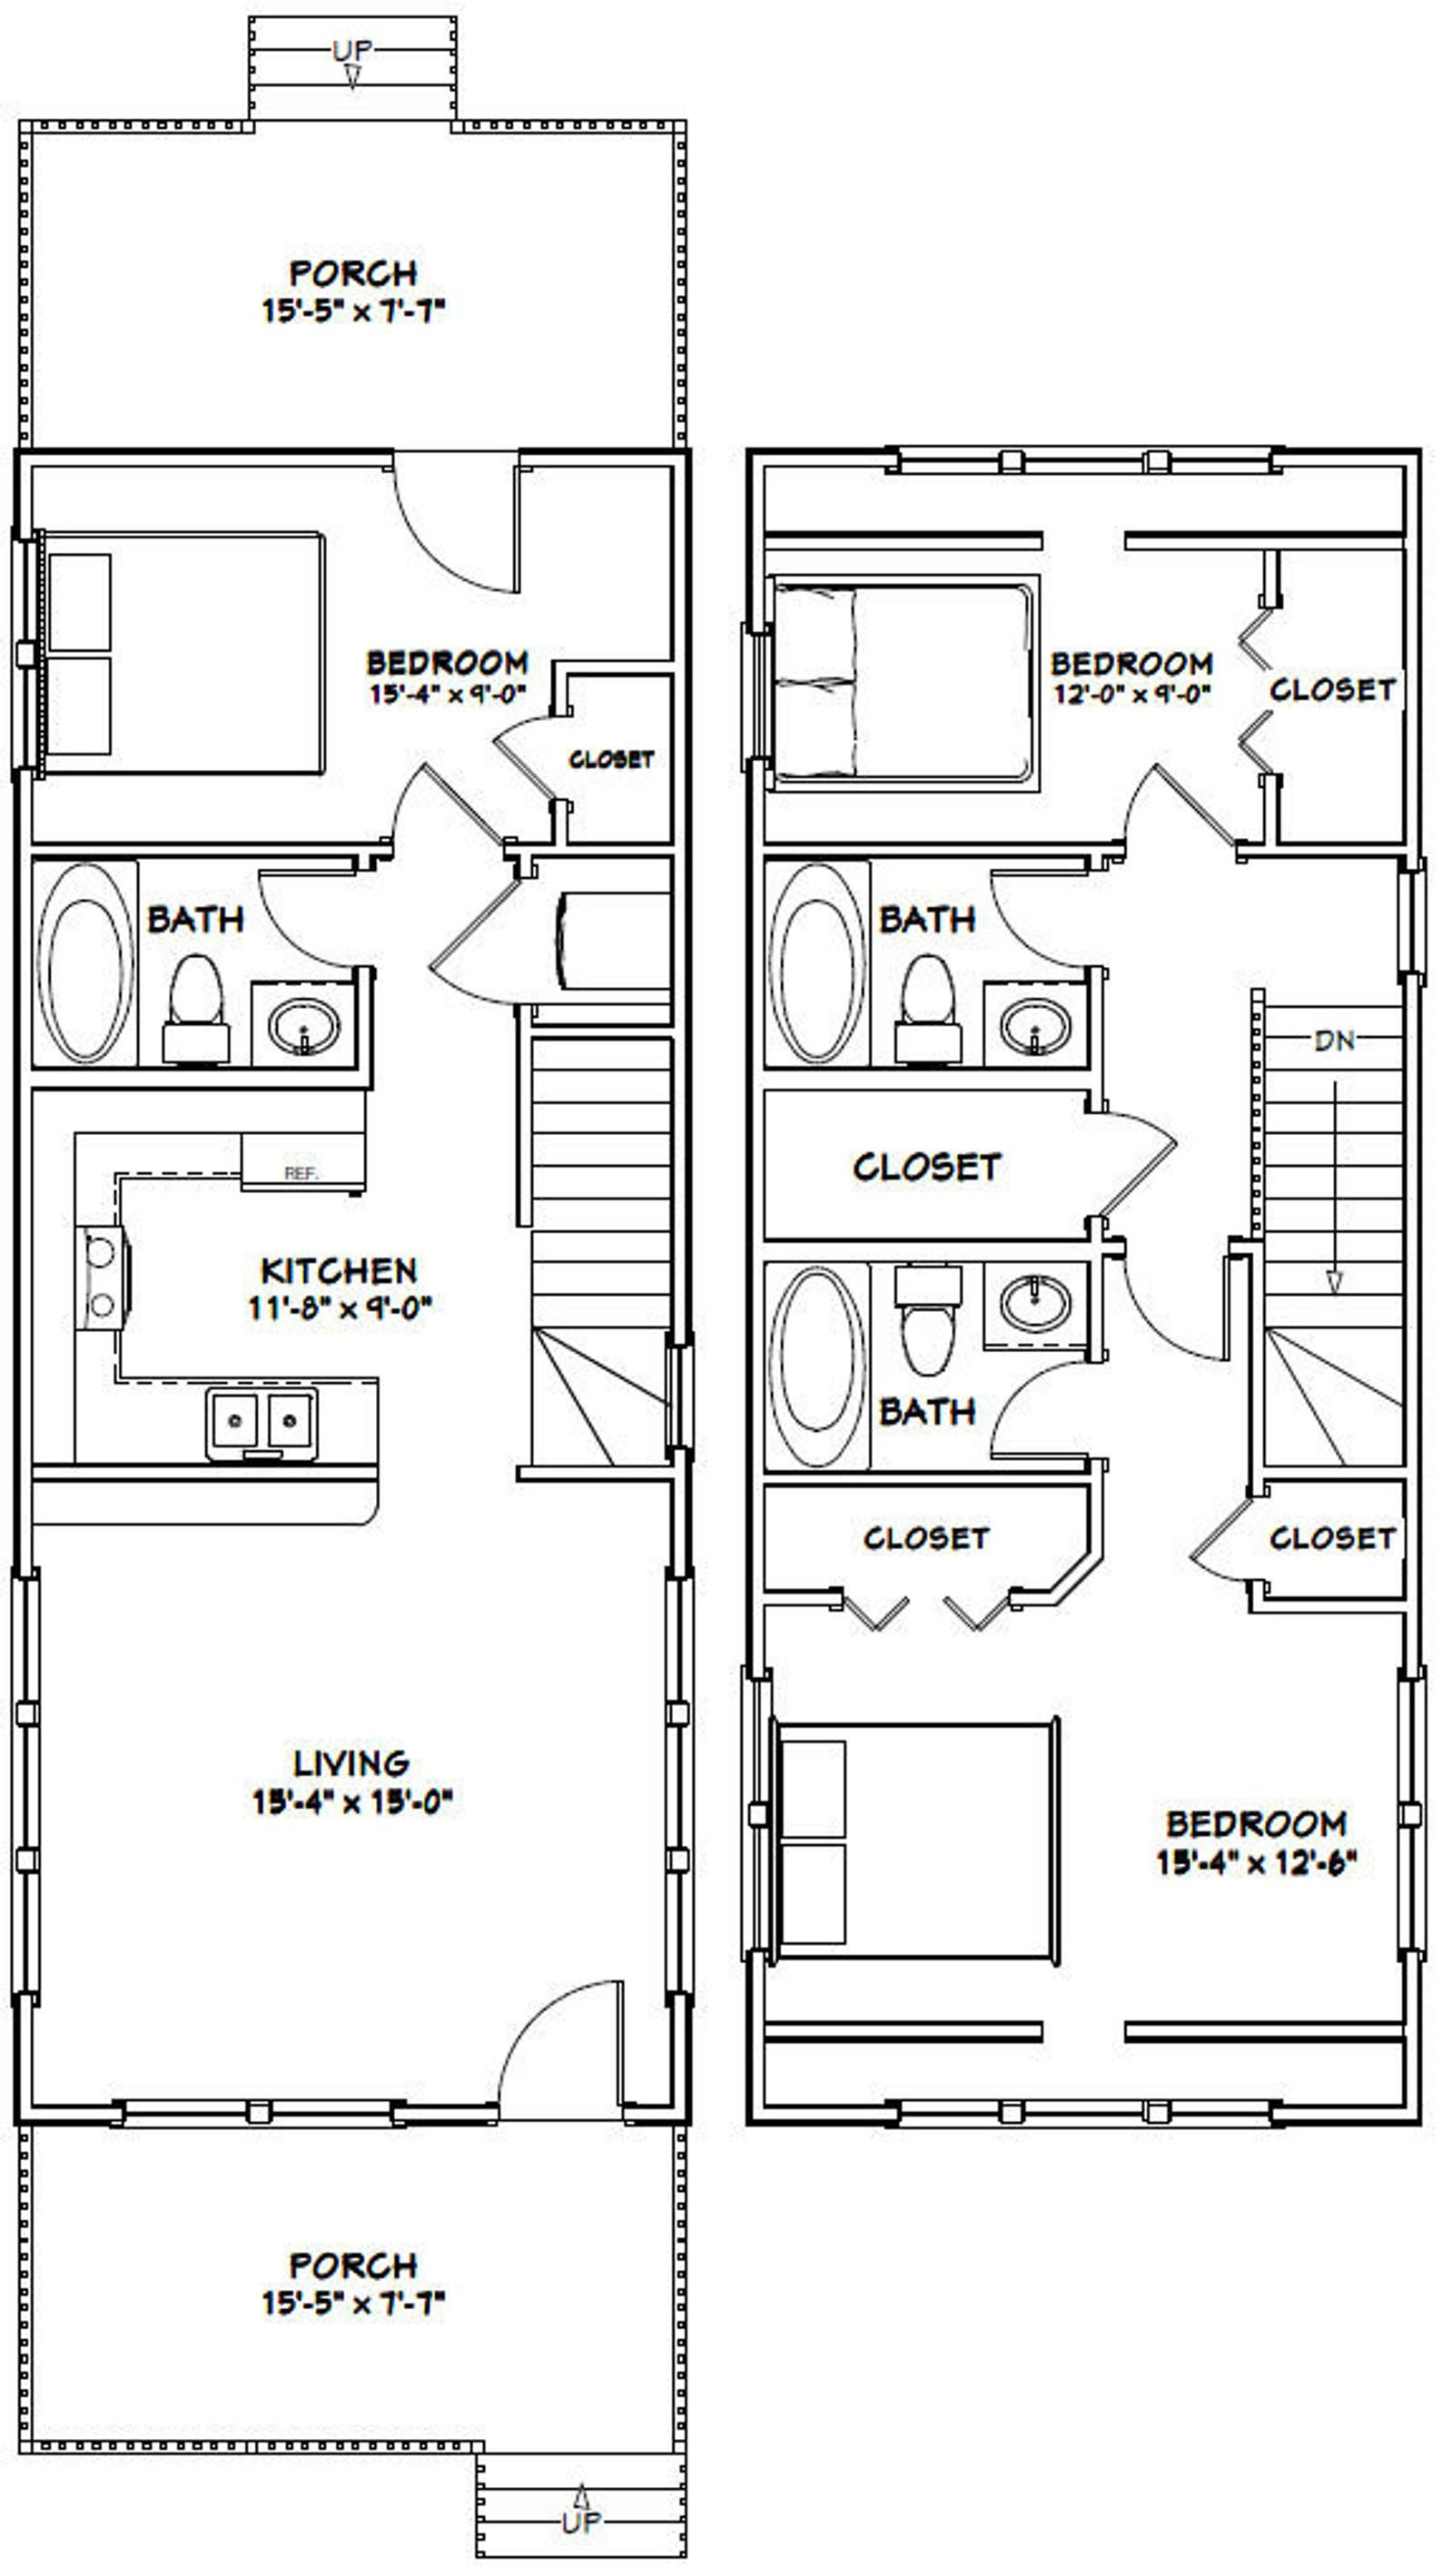 16x40 House 1193 Sq Ft Pdf Floor Plan Instant Etsy In 2021 Narrow House Plans Tiny House Floor Plans House Floor Plans